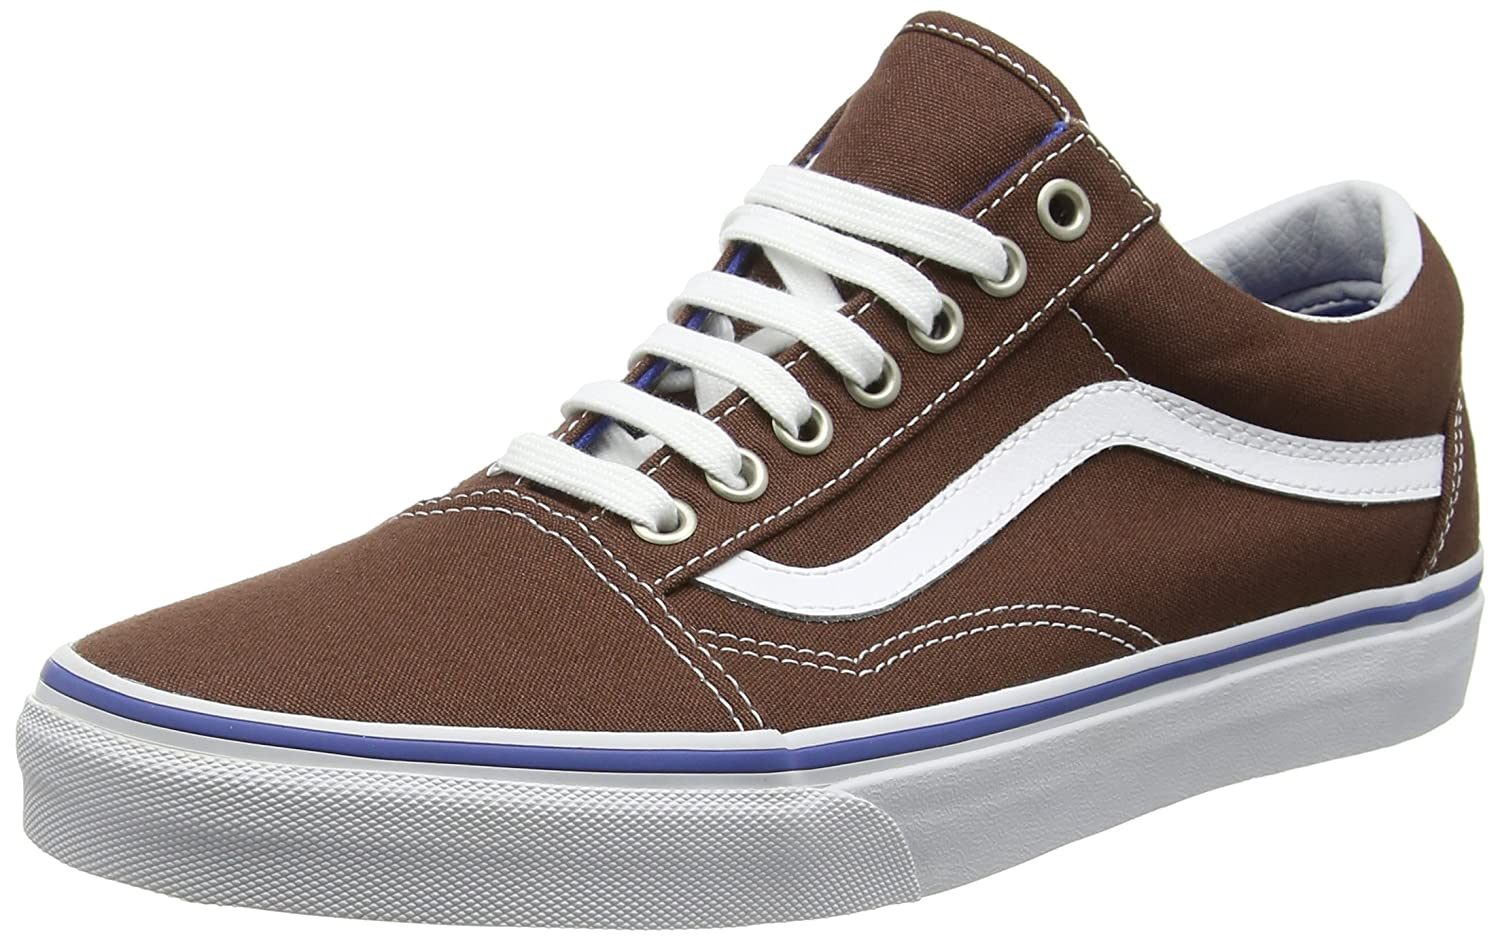 Vans Unisex Old Skool Classic Skate Shoes B019JBPQEA 11 M US Women / 9.5 M US Men|Chestnut True White